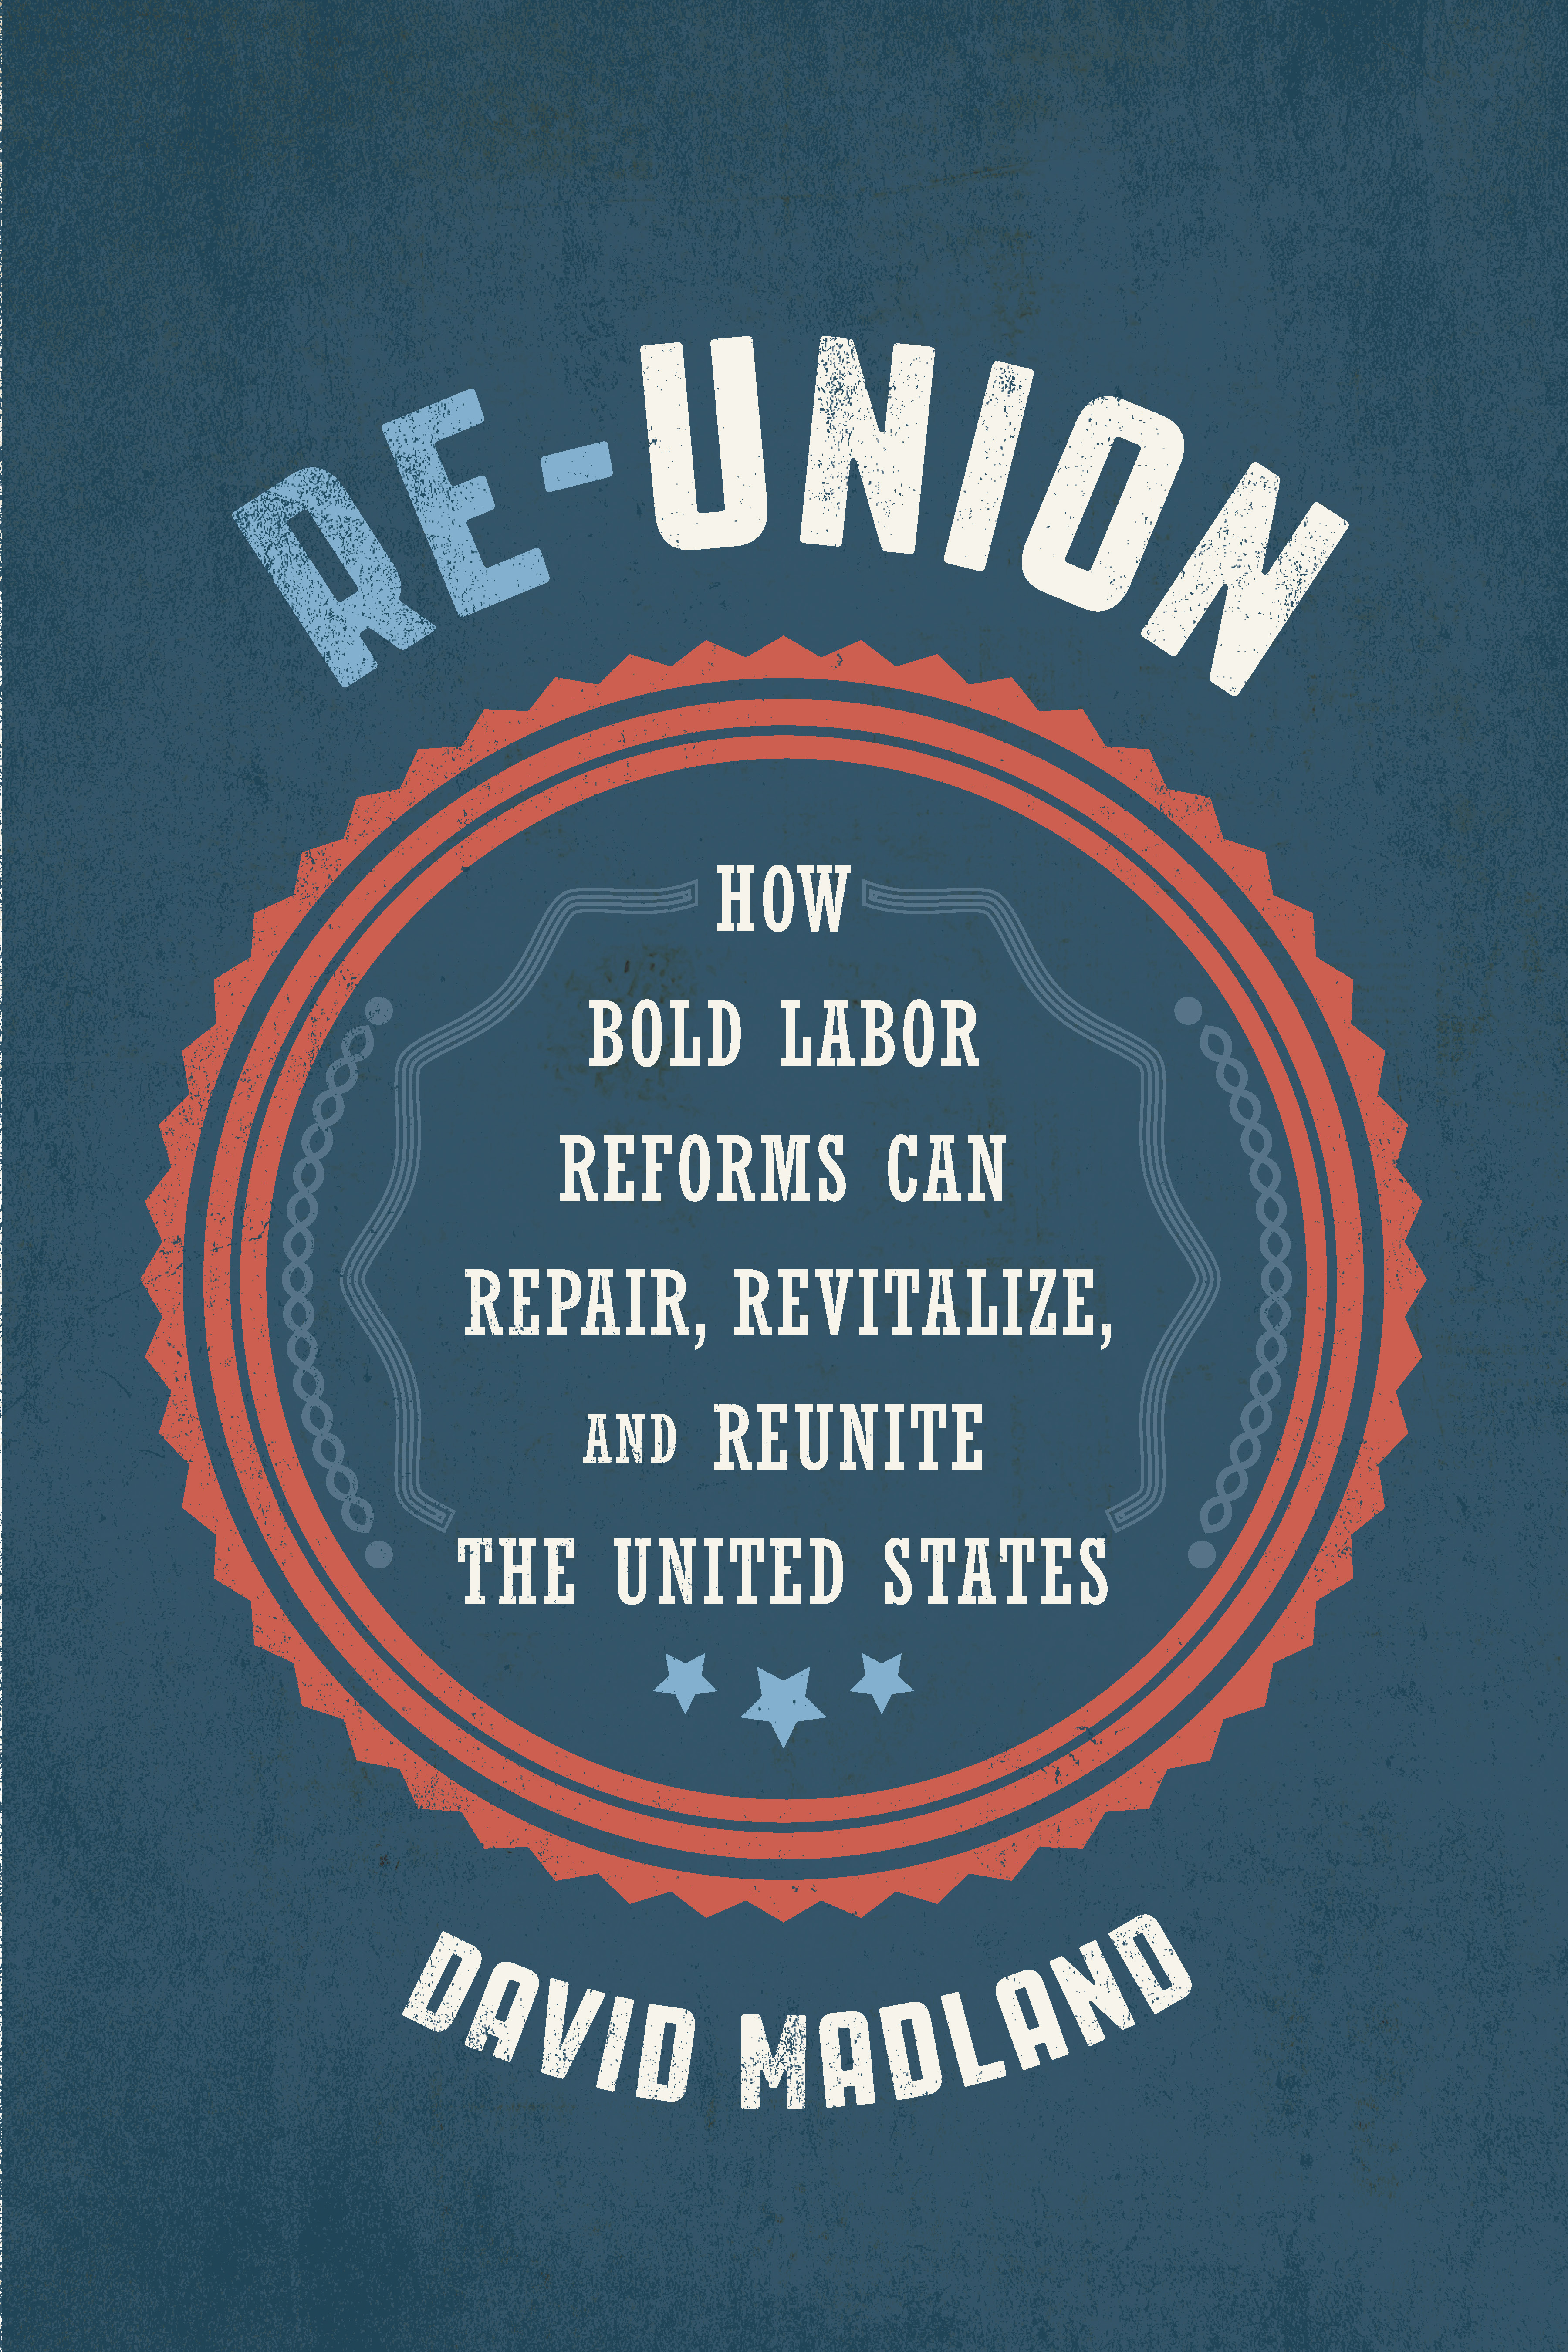 http://Labor%20Unions%20and%20the%20Future